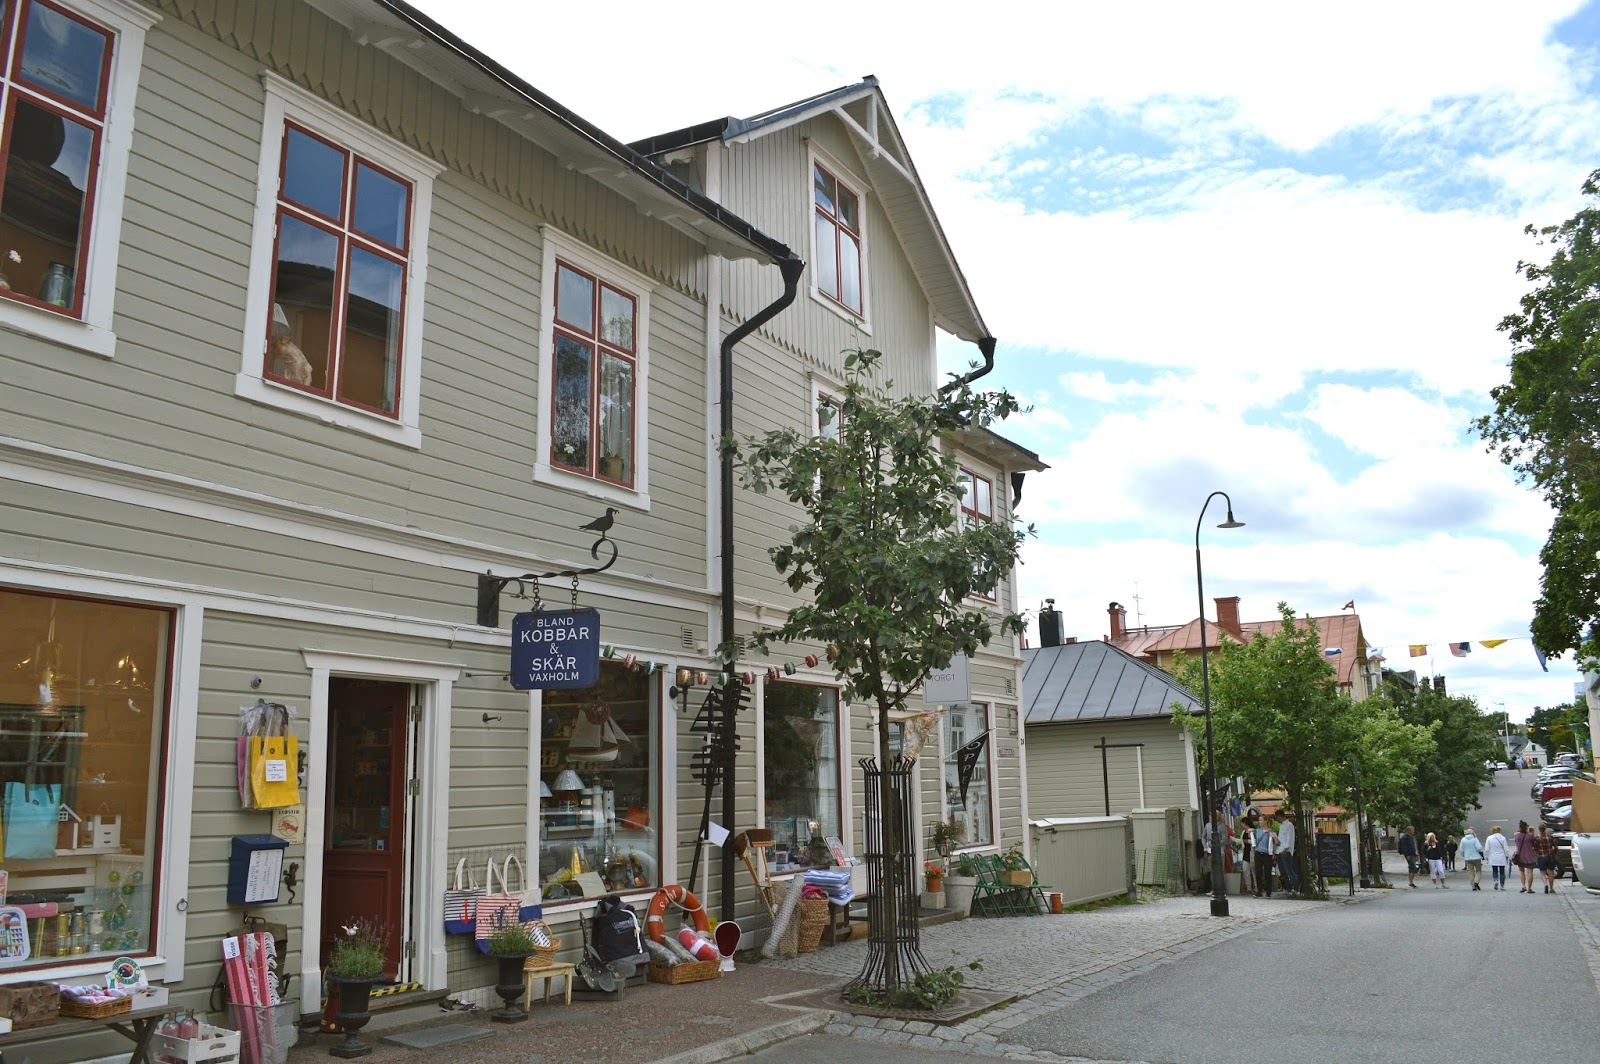 Shops in Vaxholm centre capital of Stockholm archipelago